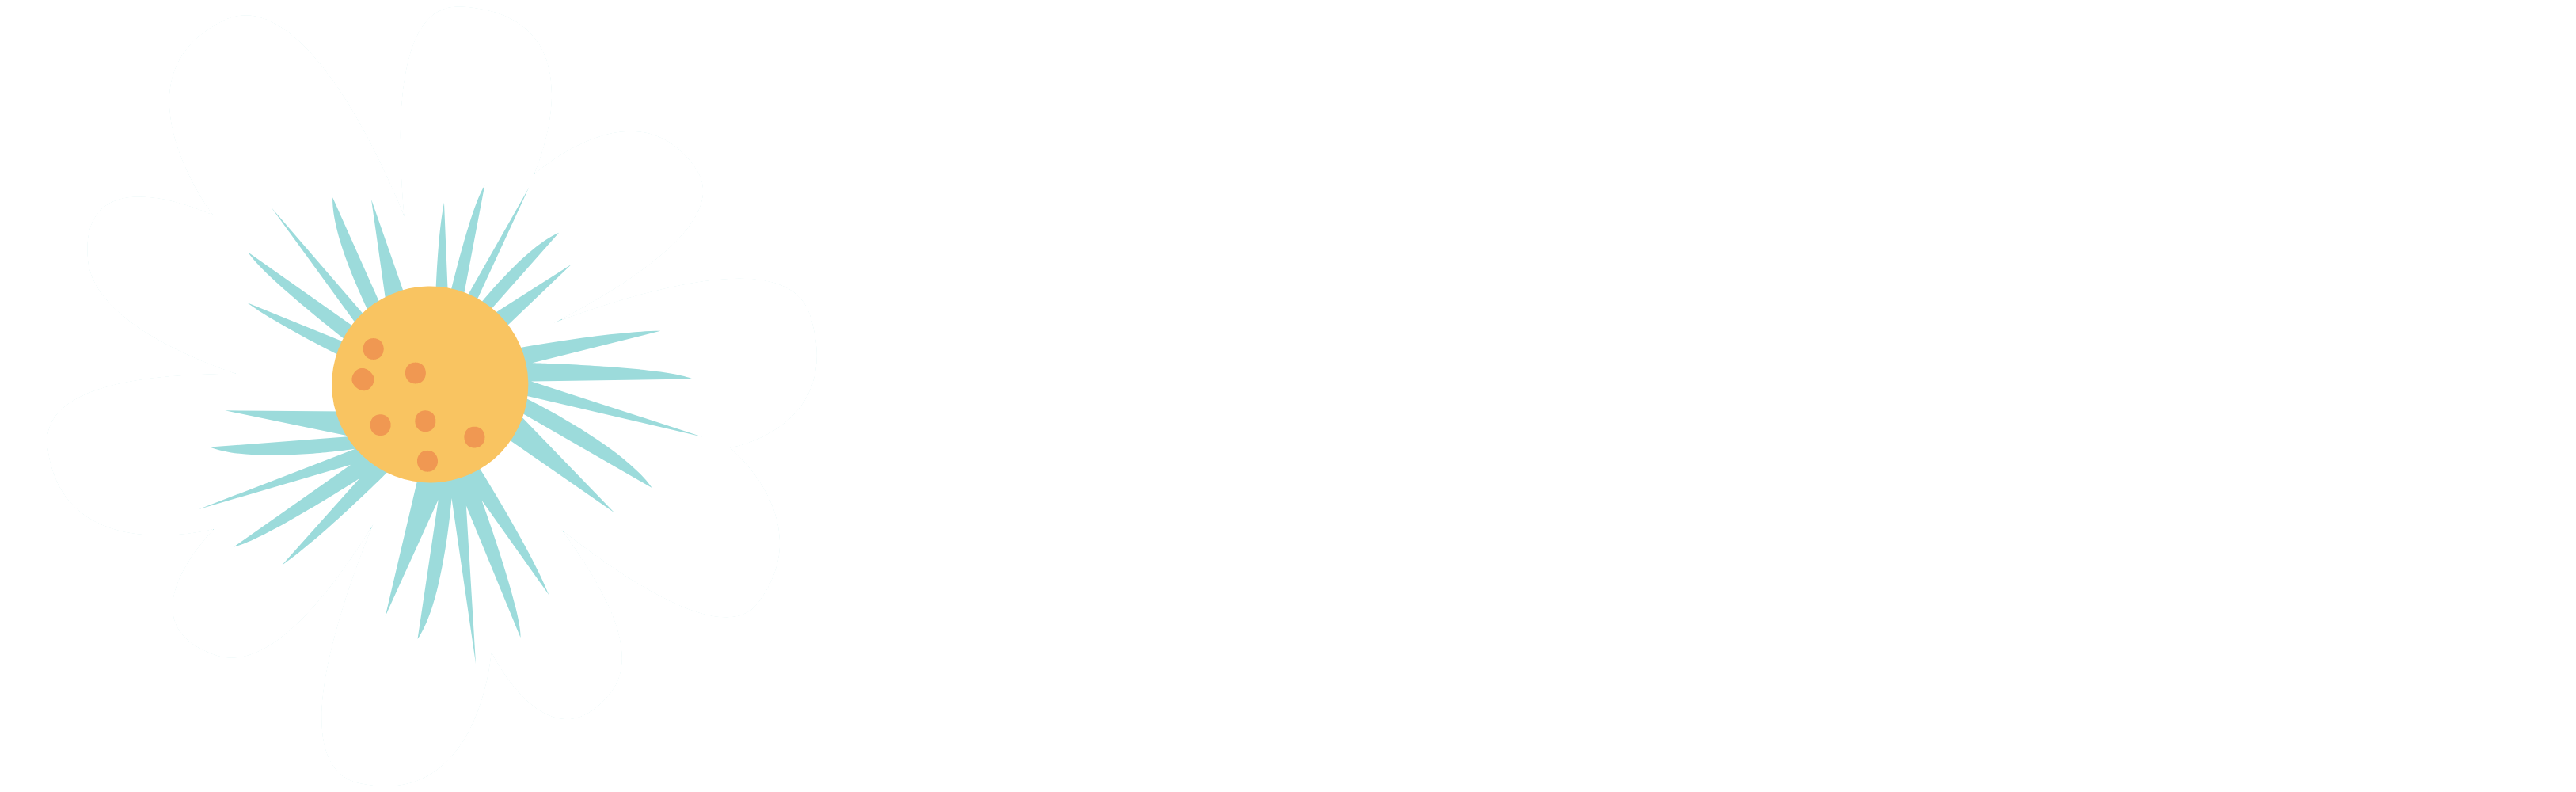 the daisy chain project logo